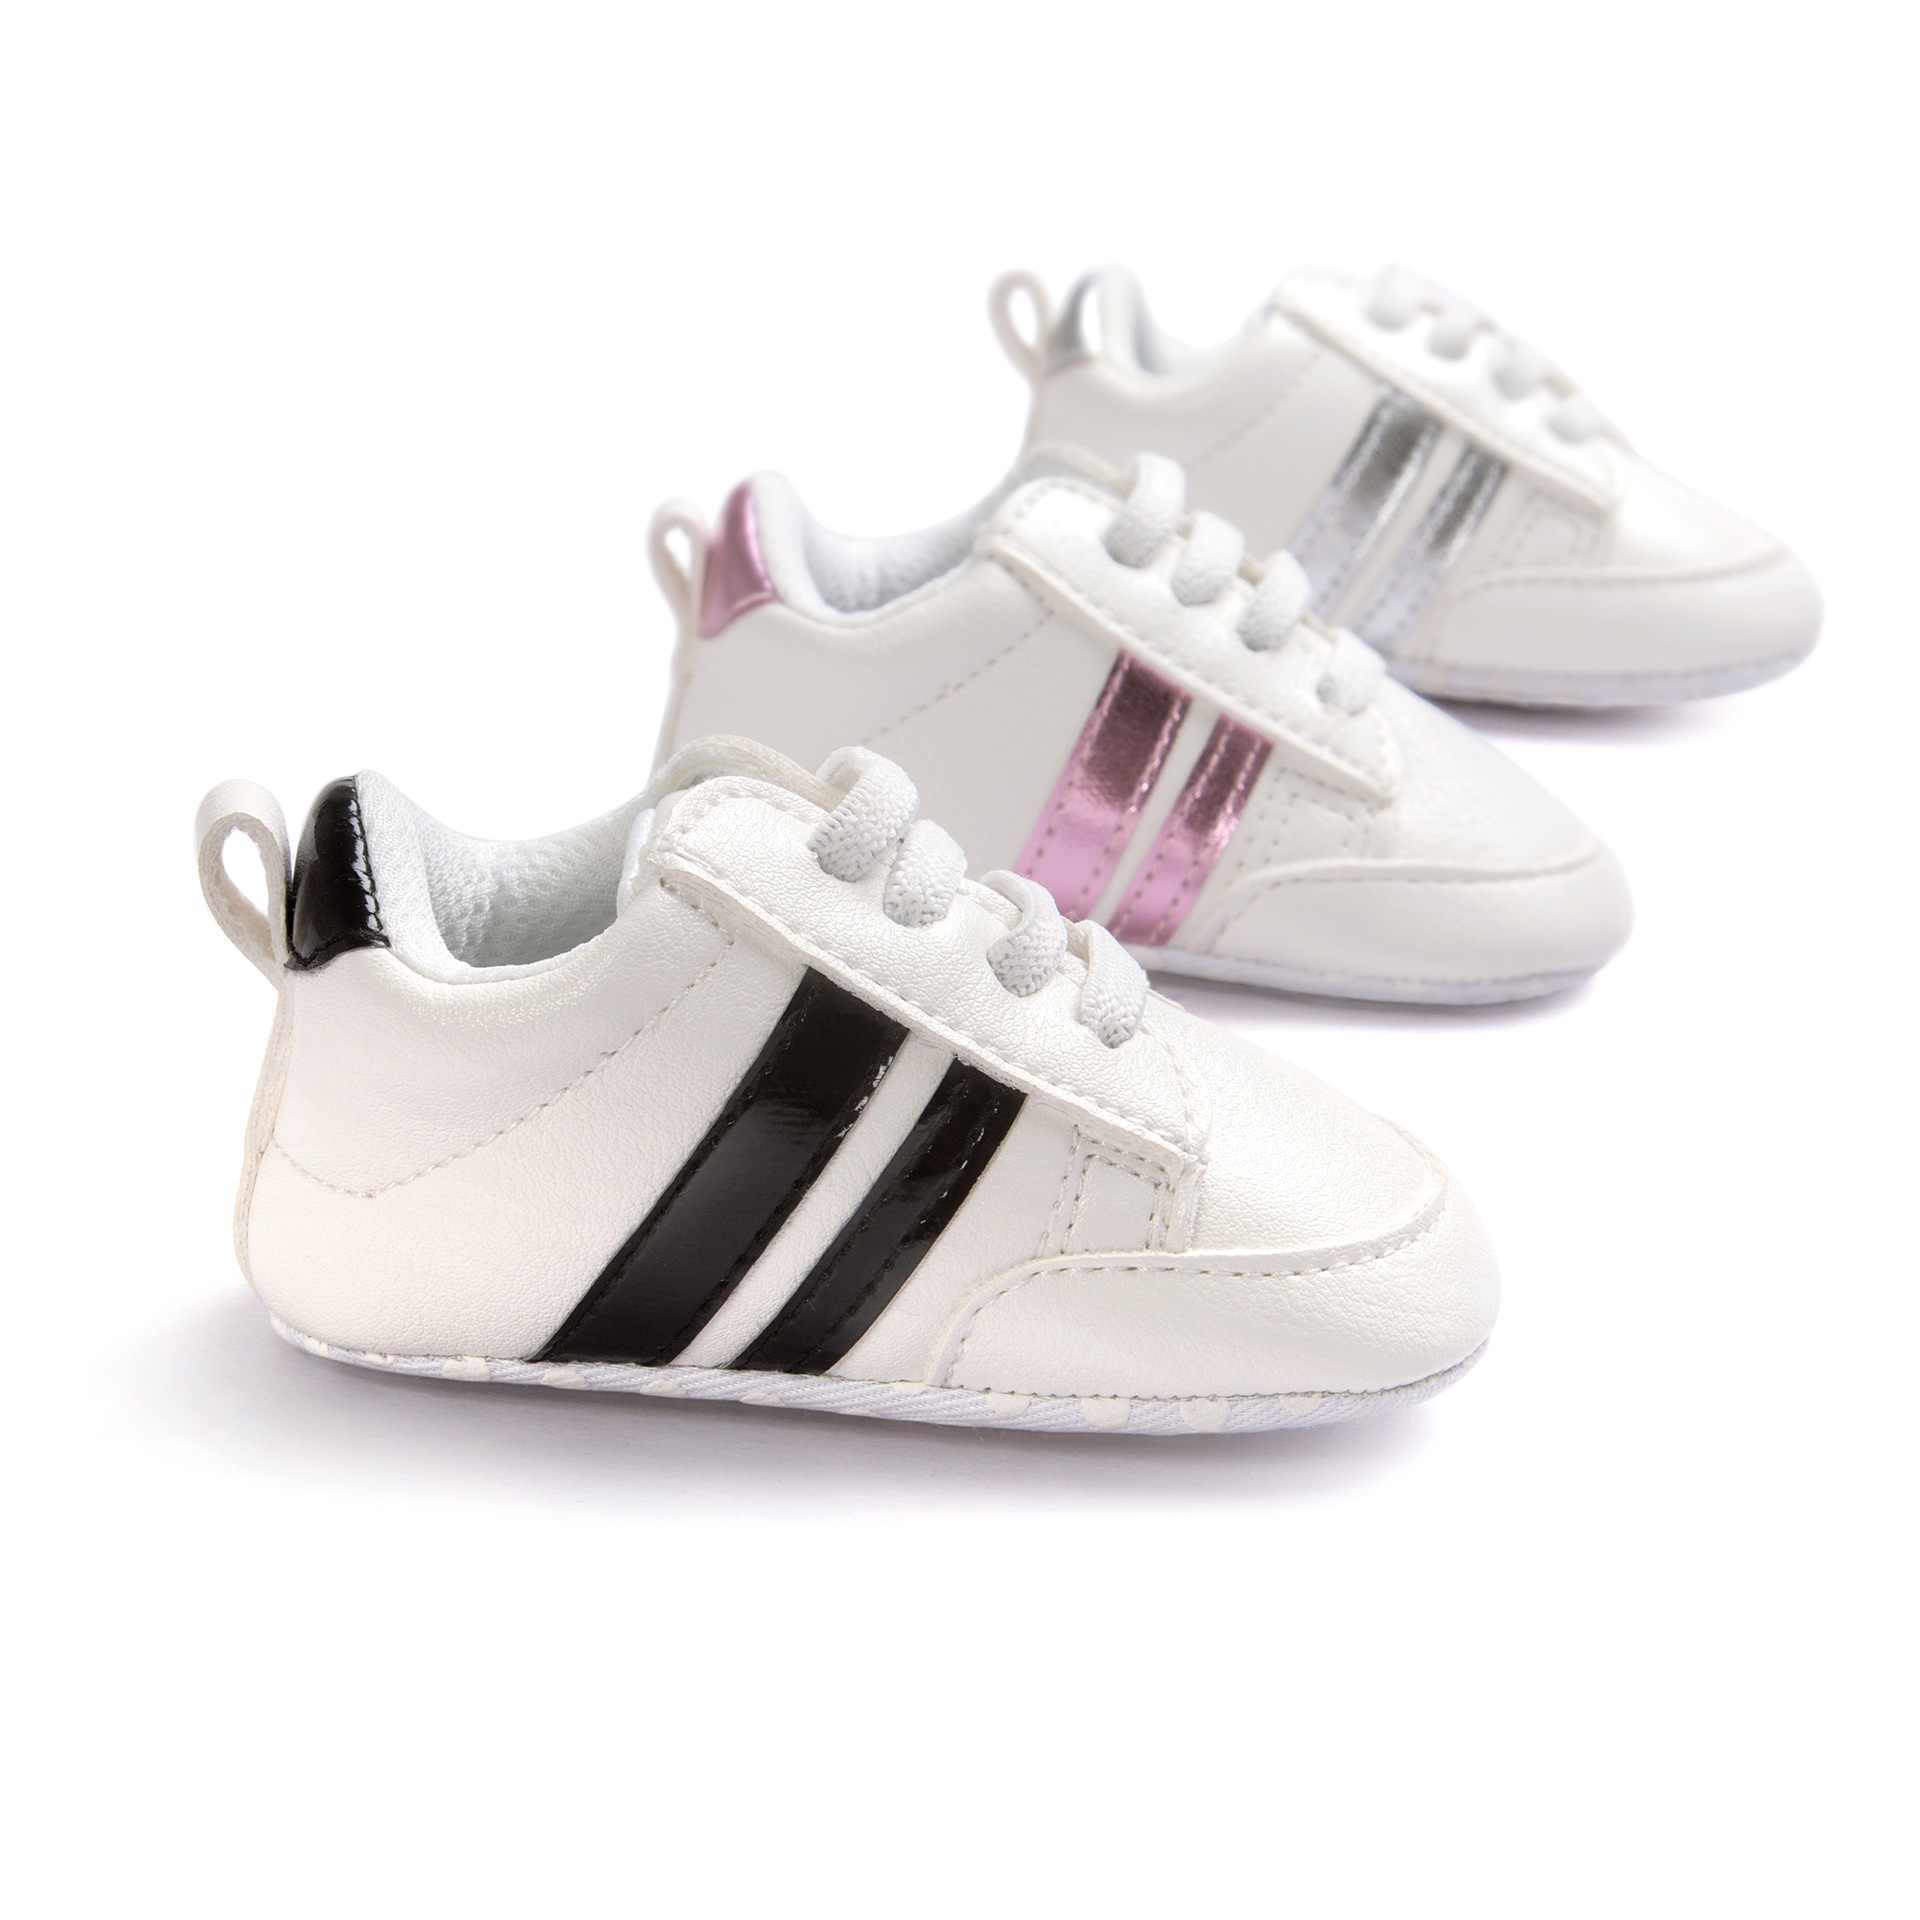 ROMIRUS Soft Bottom Mode Sneakers Baby Pojkar Girls Första Walkers Baby Inomhus Non-Slop Toddler Skor 8 Nya Färger